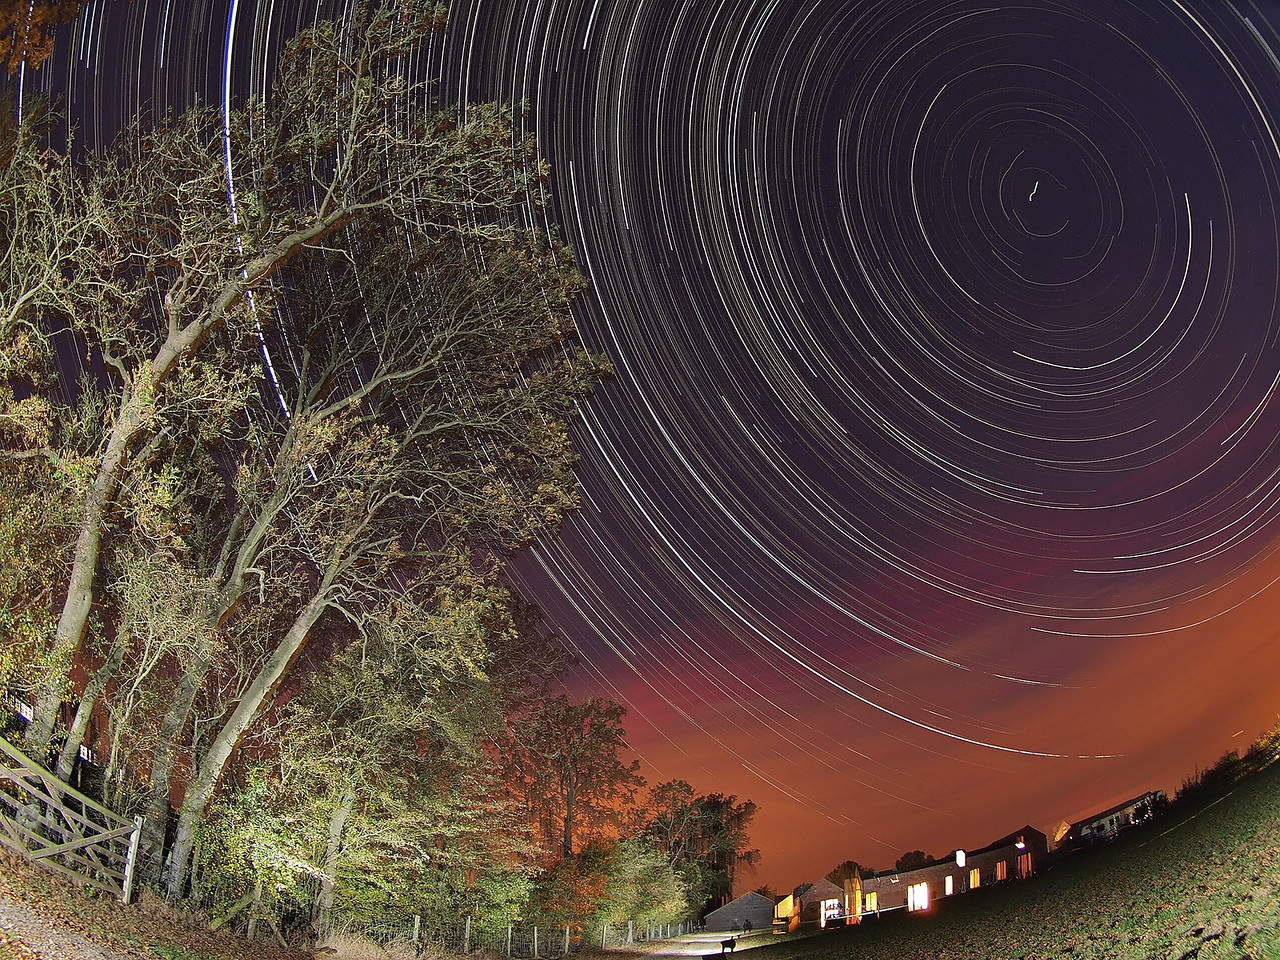 Oct 01/02 2011 startrail. The autumnal heatwave & clear skies continues, although the frontal system is approaching as can be seen looking towards the west in this shot . Used the trees to compose and lead you into the startrail. This one was a mere 7hrs worth of continuous shooting :-) Captured with Olympus E5 & 8mm fisheye. 15s exposure time, F3.5 and ISO 500. Foreground and trees lit with flash bursts. Unfortunately I had a tripod wobble moment partly through the shoot which resulted in loss of the concentric trails (more visible nearer Polaris).